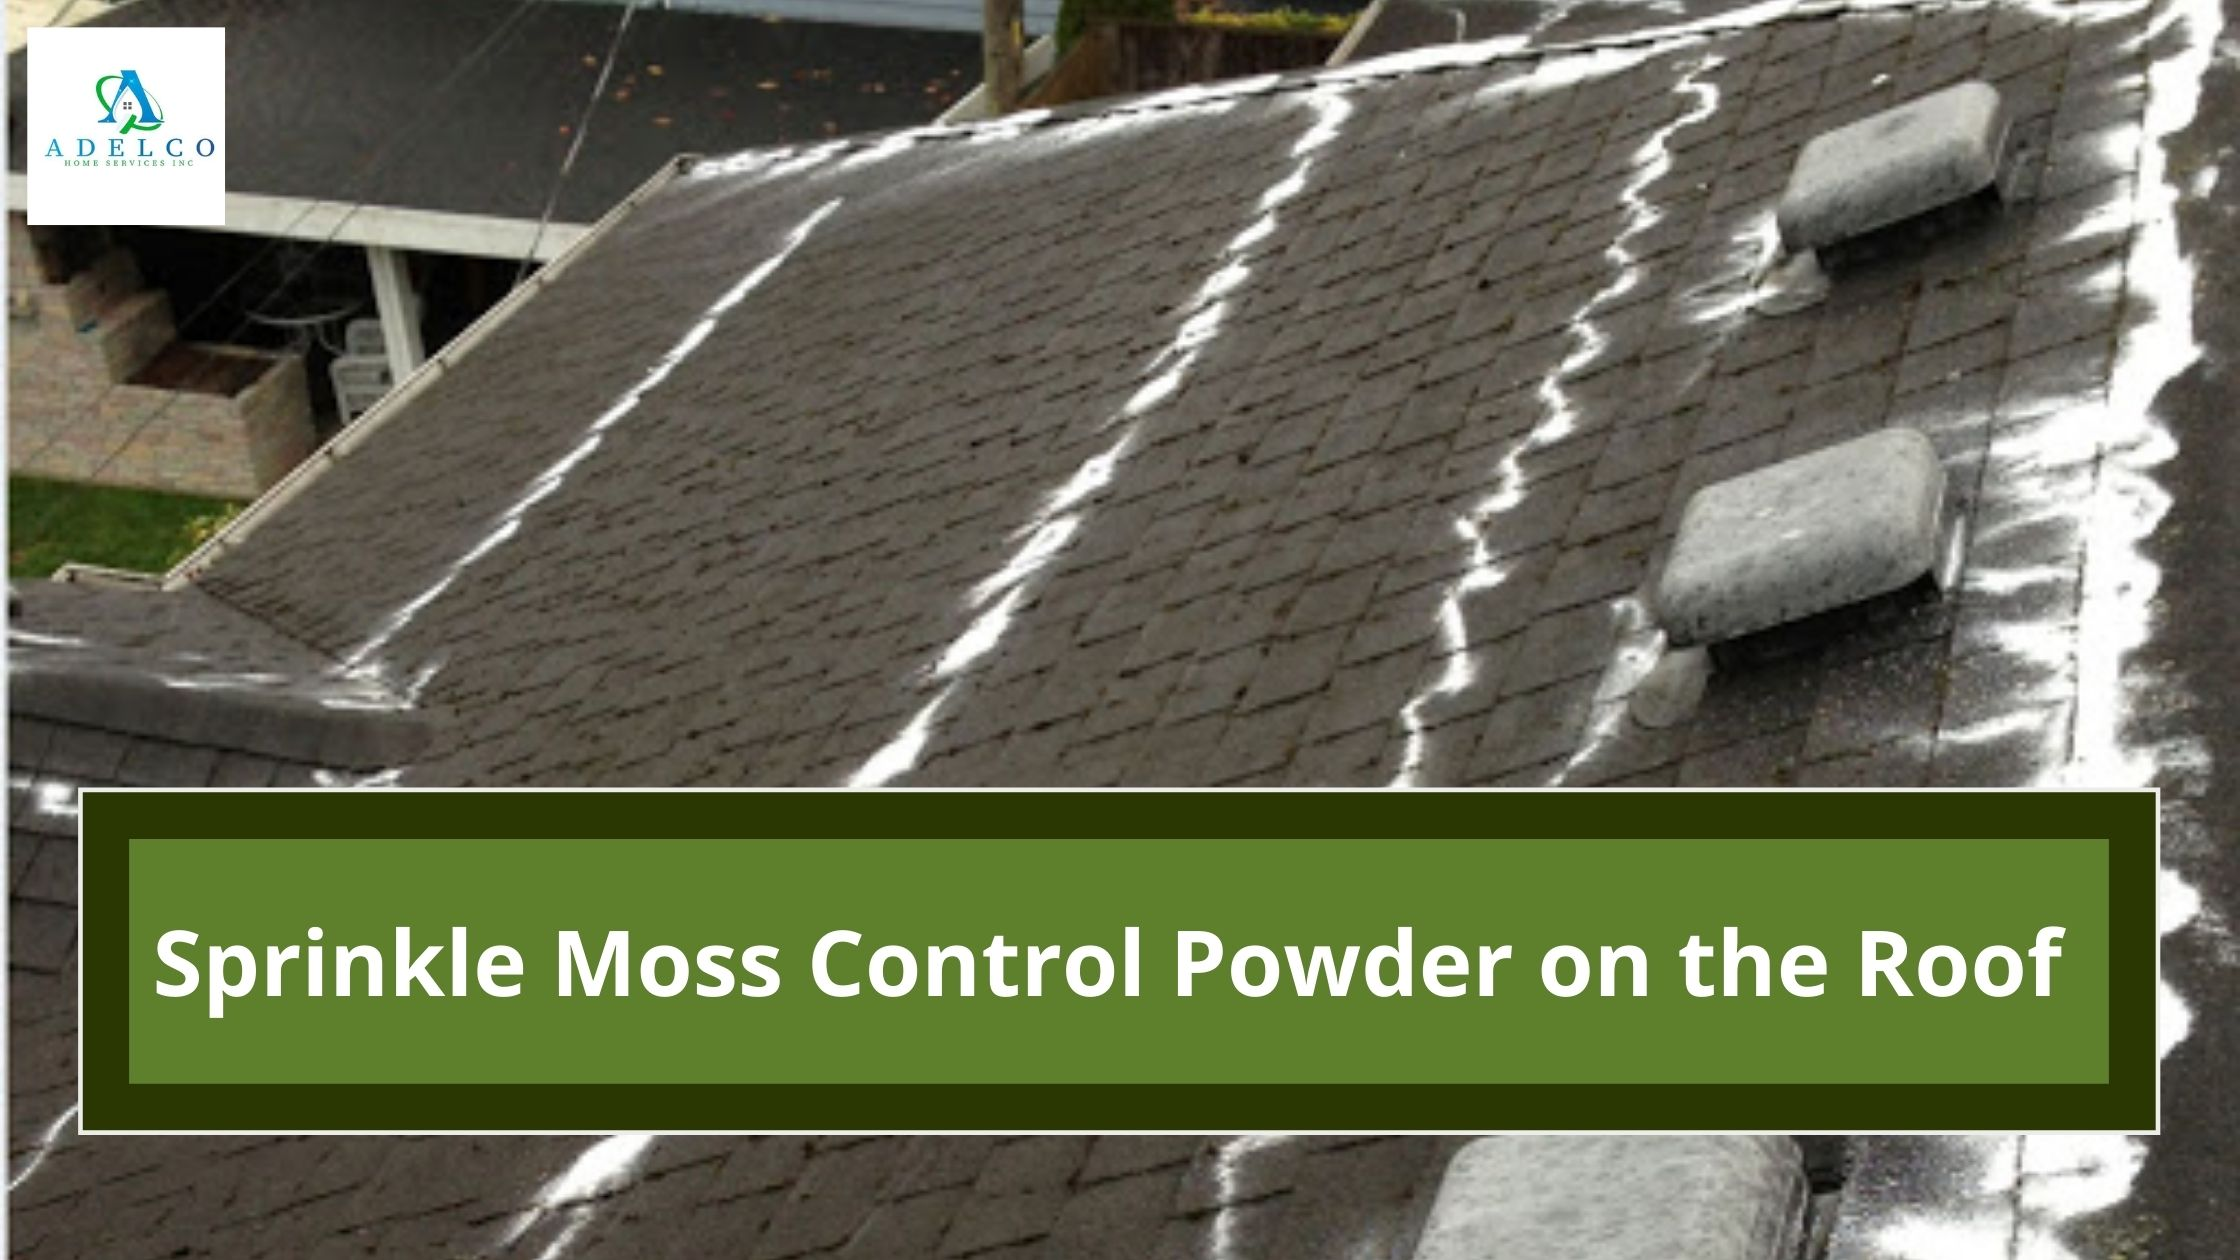 Sprinkle Moss Control Powder on the Roof